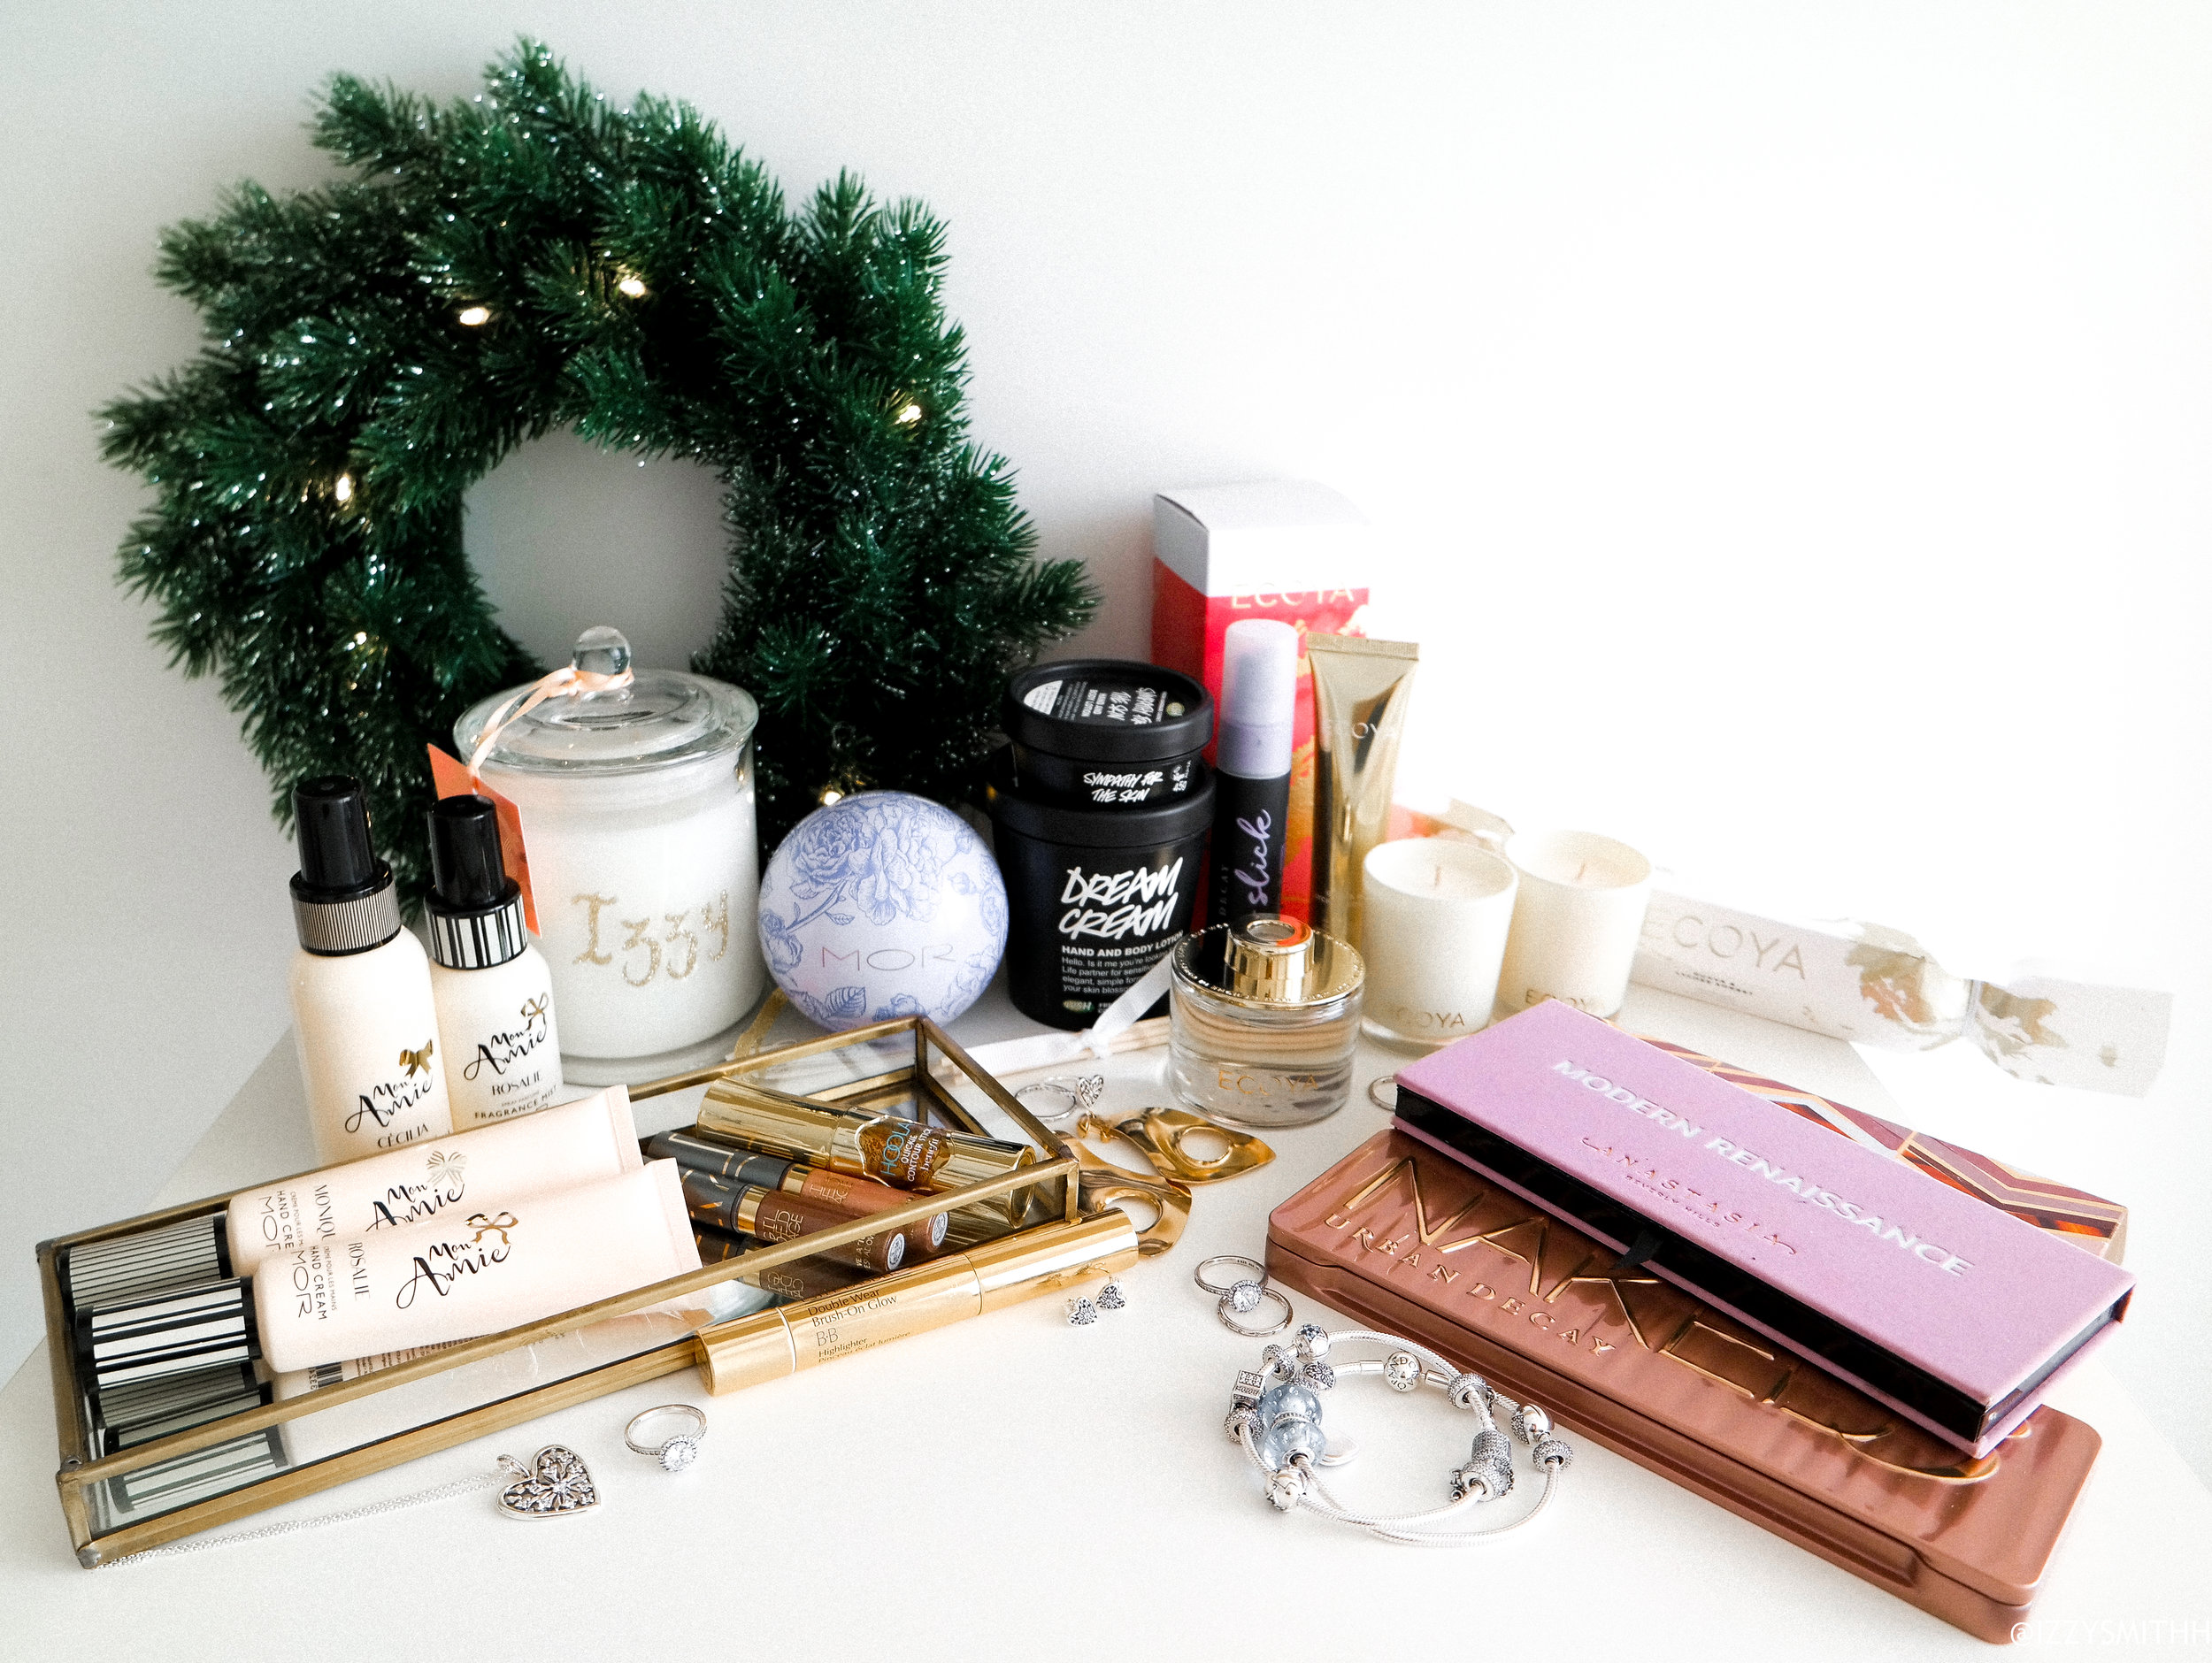 Christmas Gift Ideas Under $100 | Izzy Wears Blog